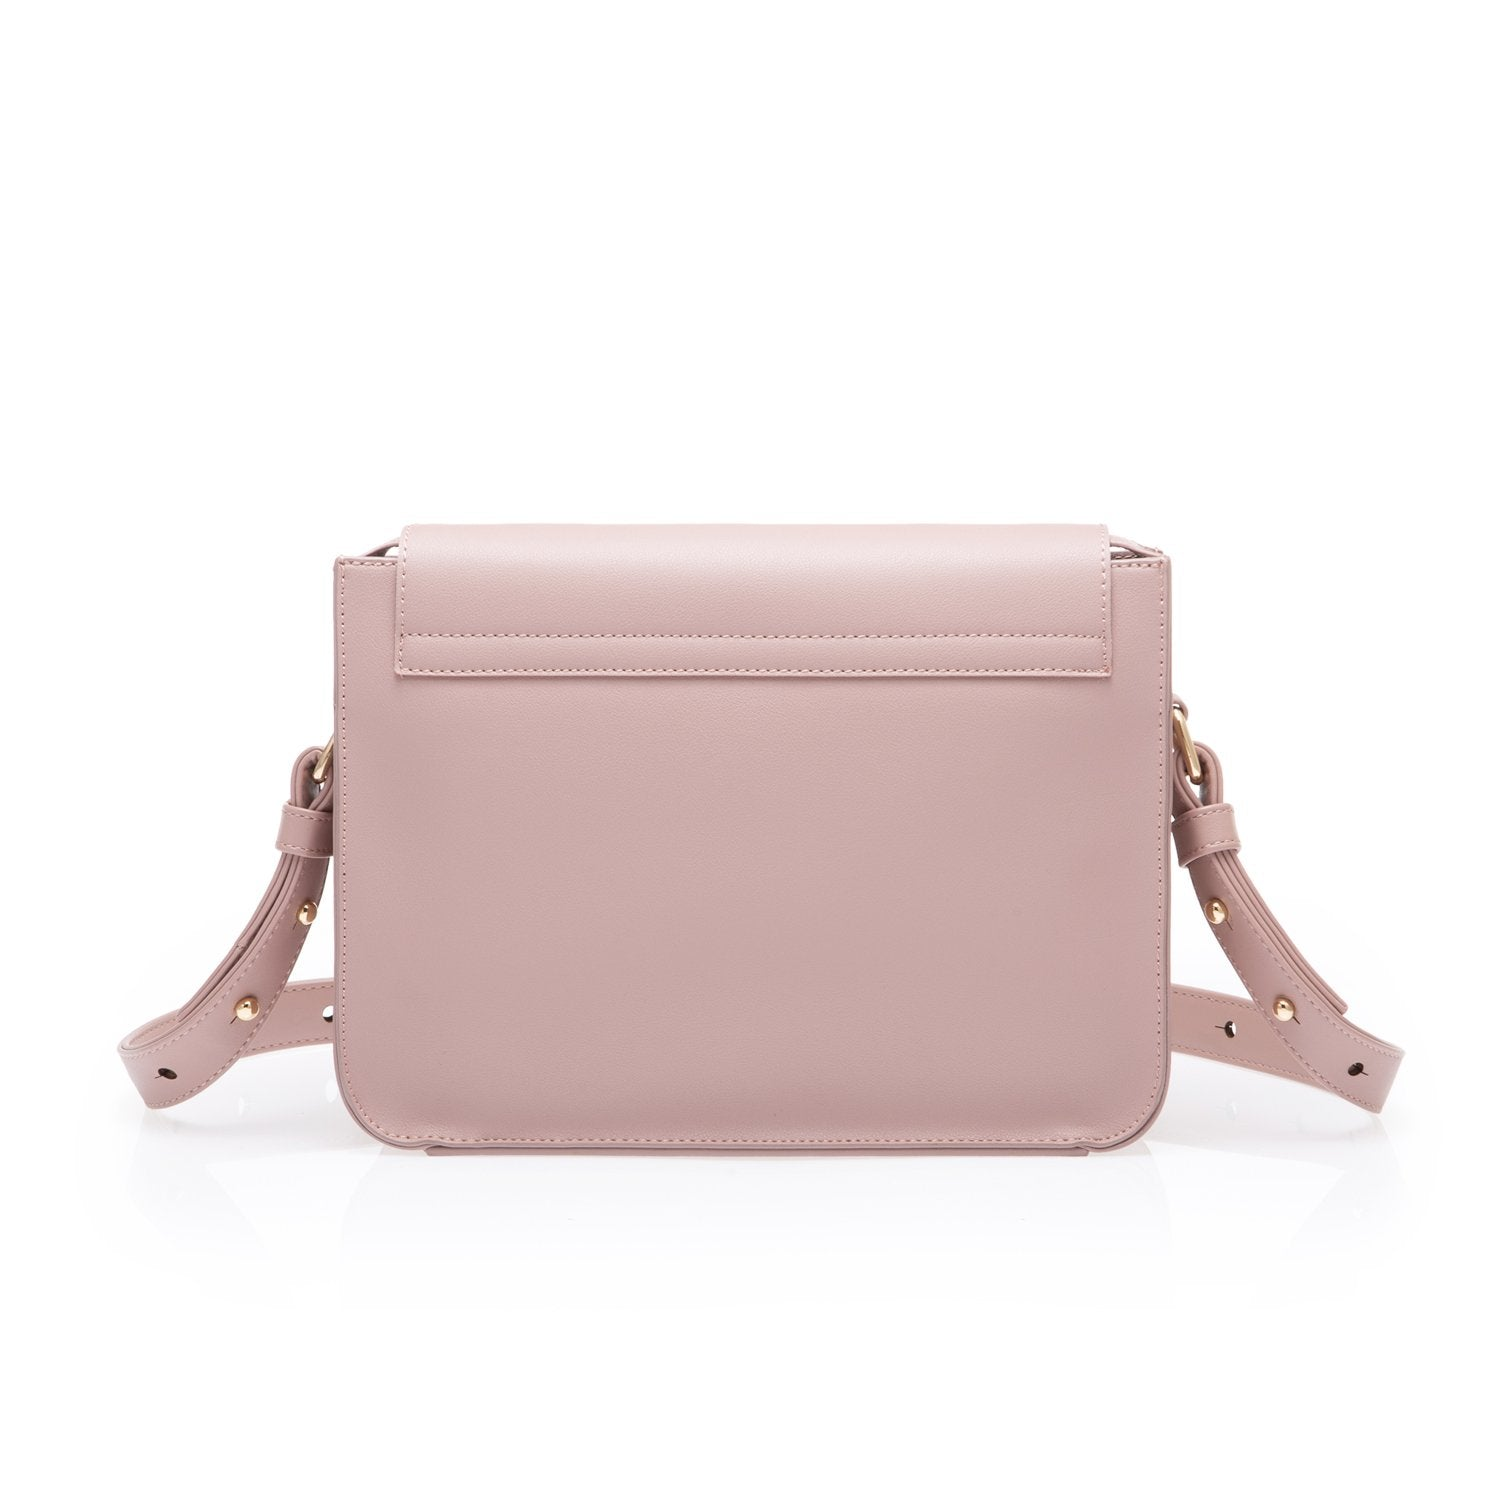 ESATCH M - NUDE PINK